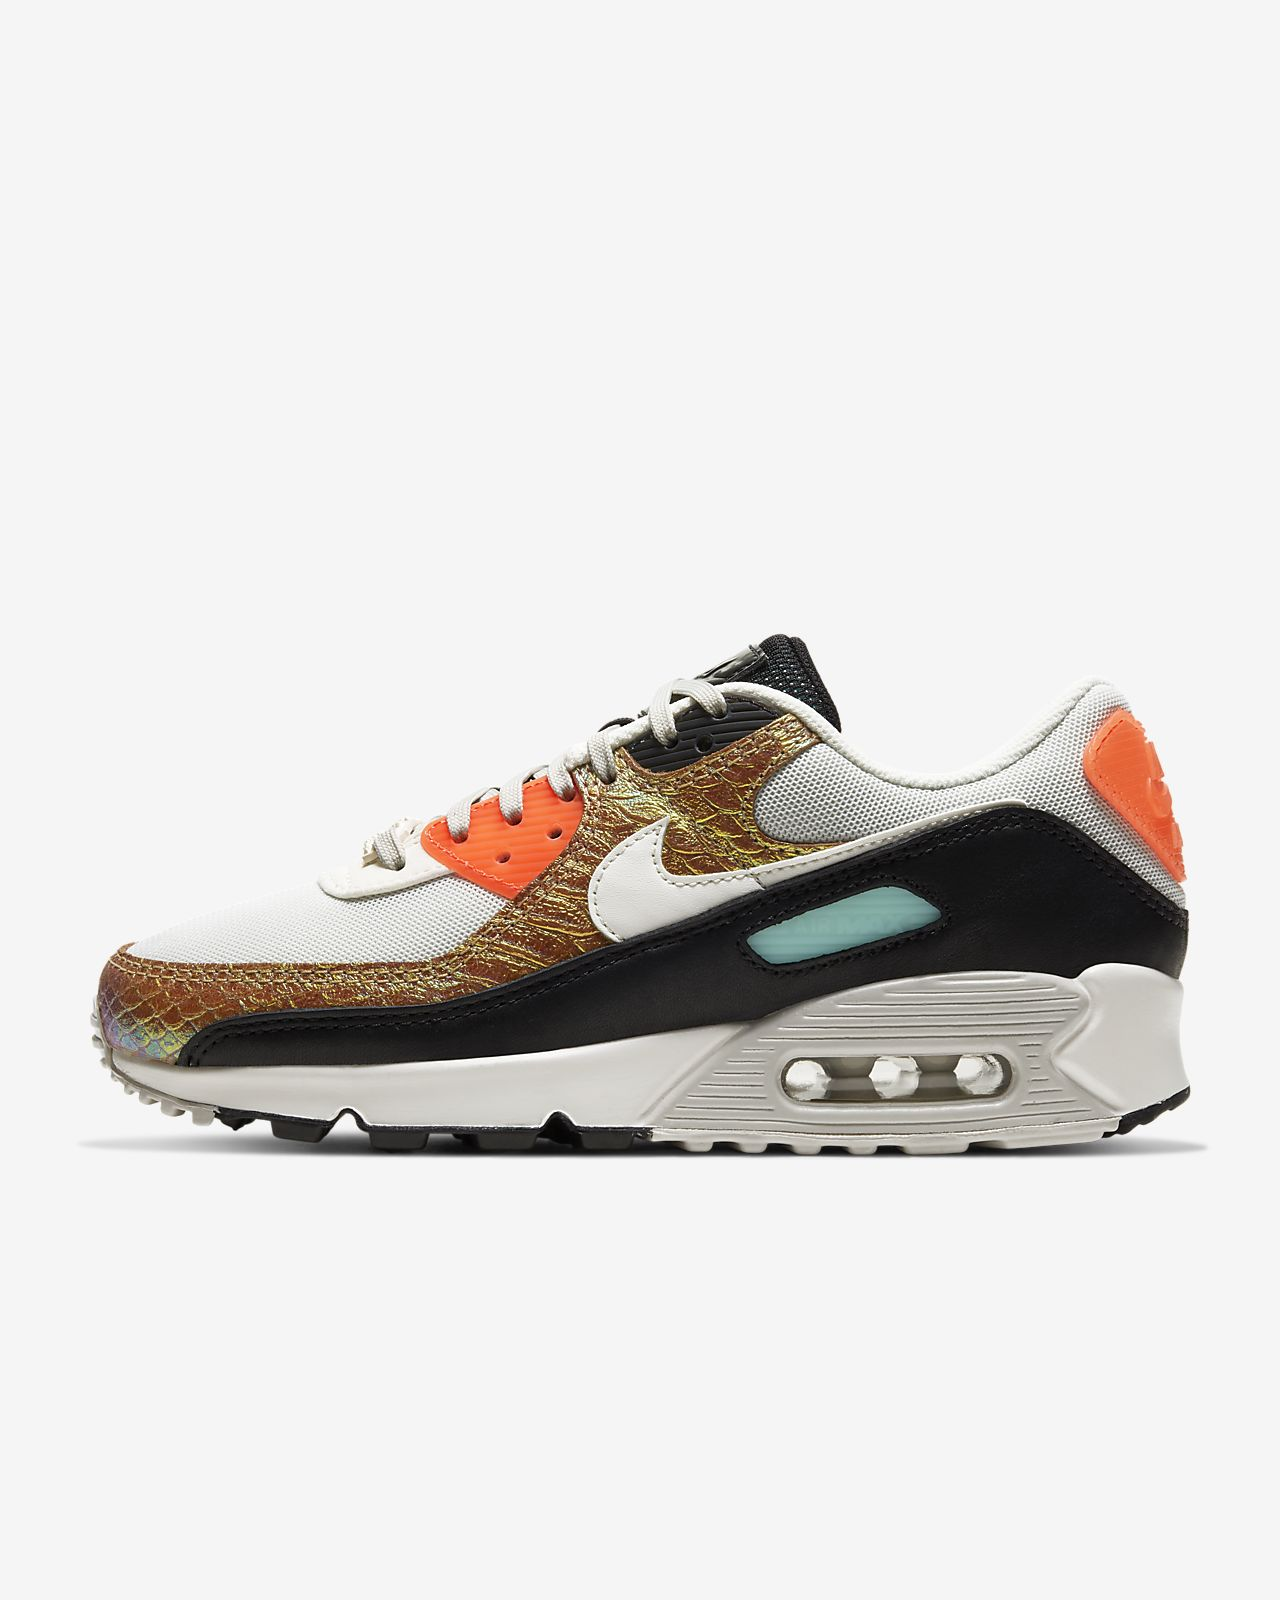 Air Max 90 Premium Sneaker In Sail Light Brown White